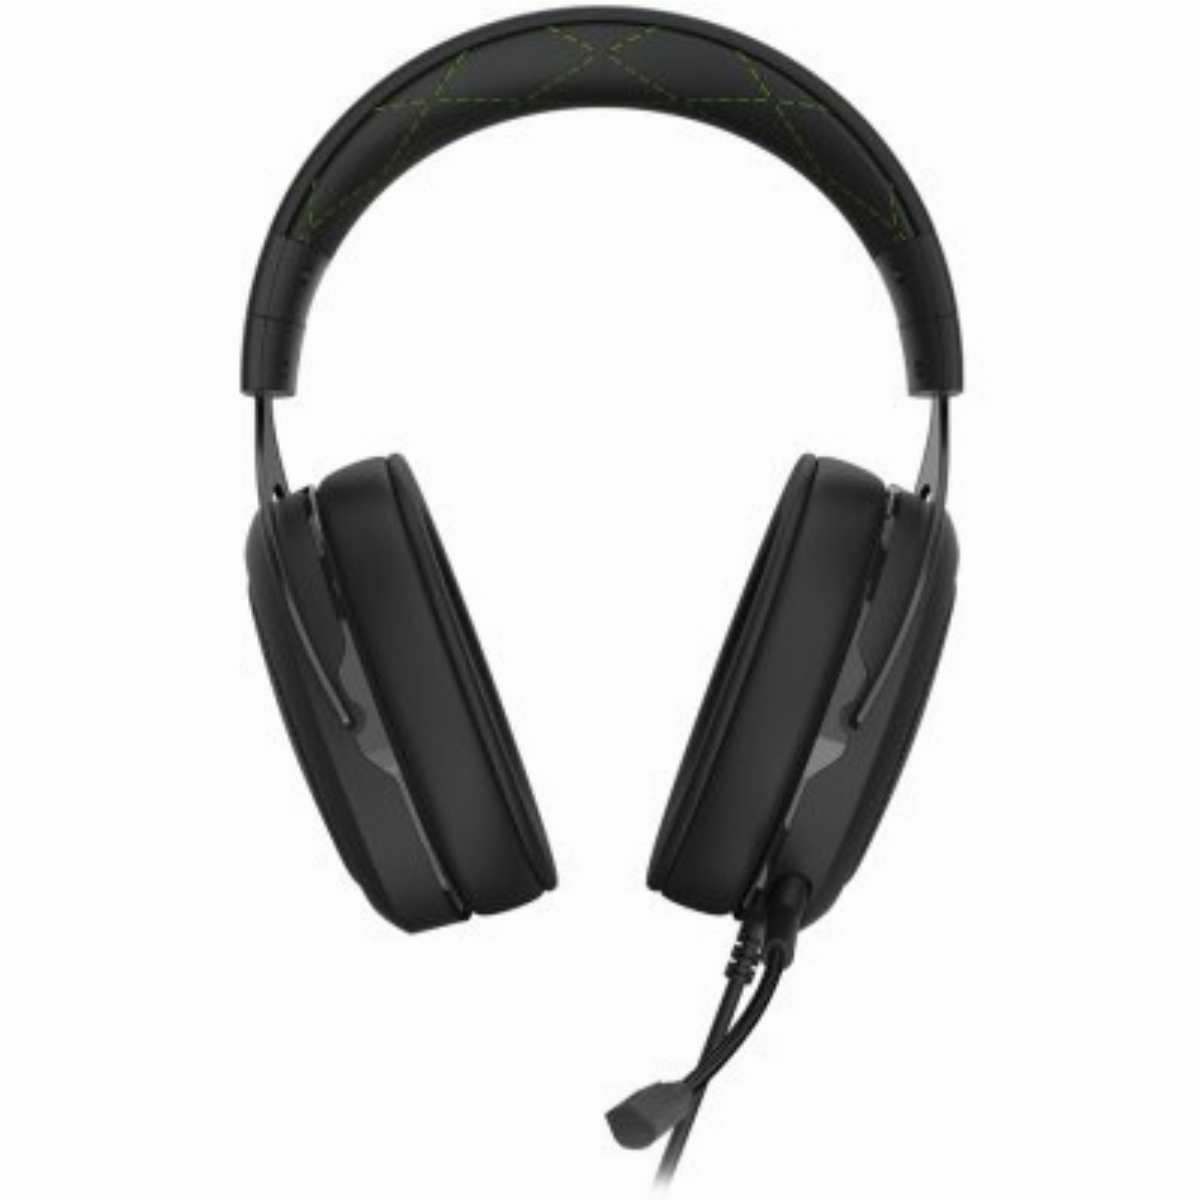 Геймърски слушалки CORSAIR HS50 PRO STEREO Gaming Headset Green - CA-9011216-EU Снимка 3